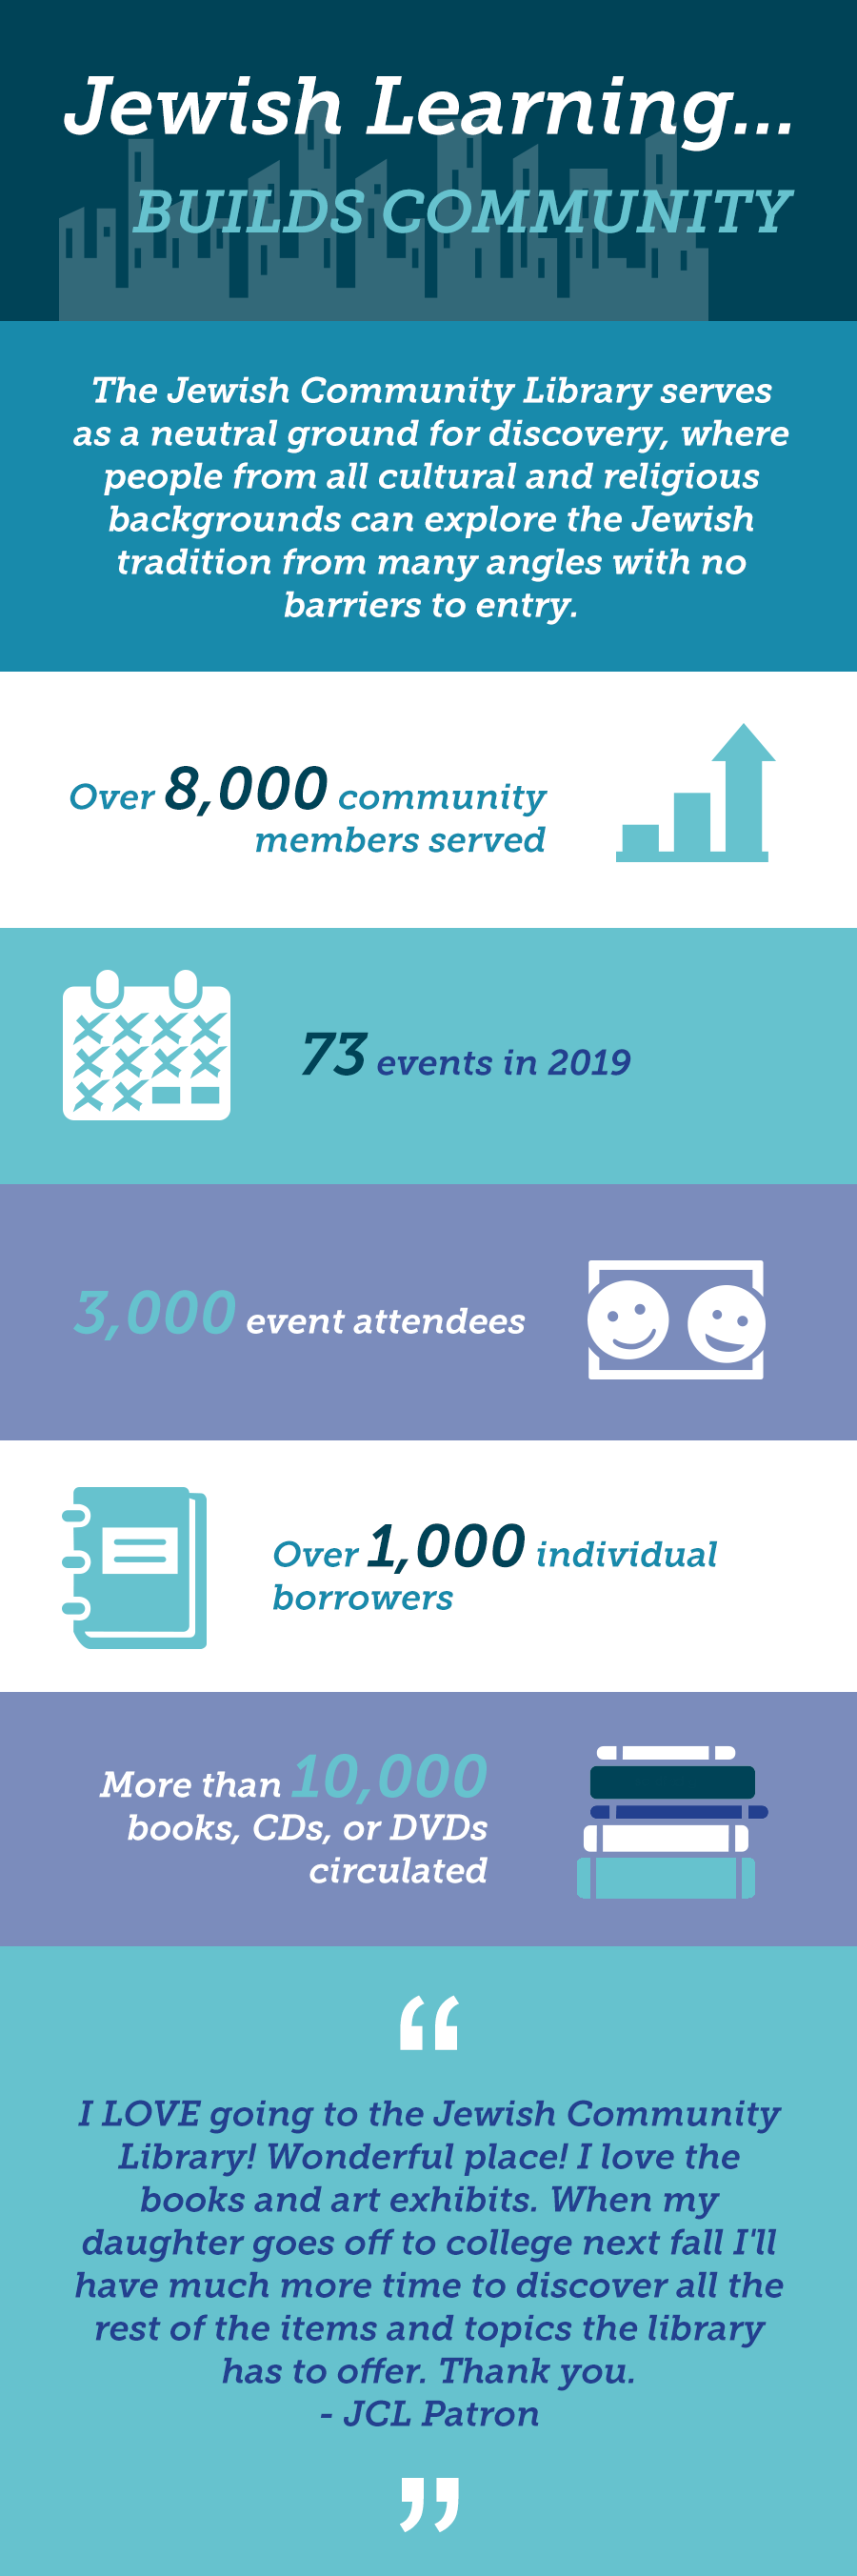 2019-06-18-jlw-year-end-infographic_05.png